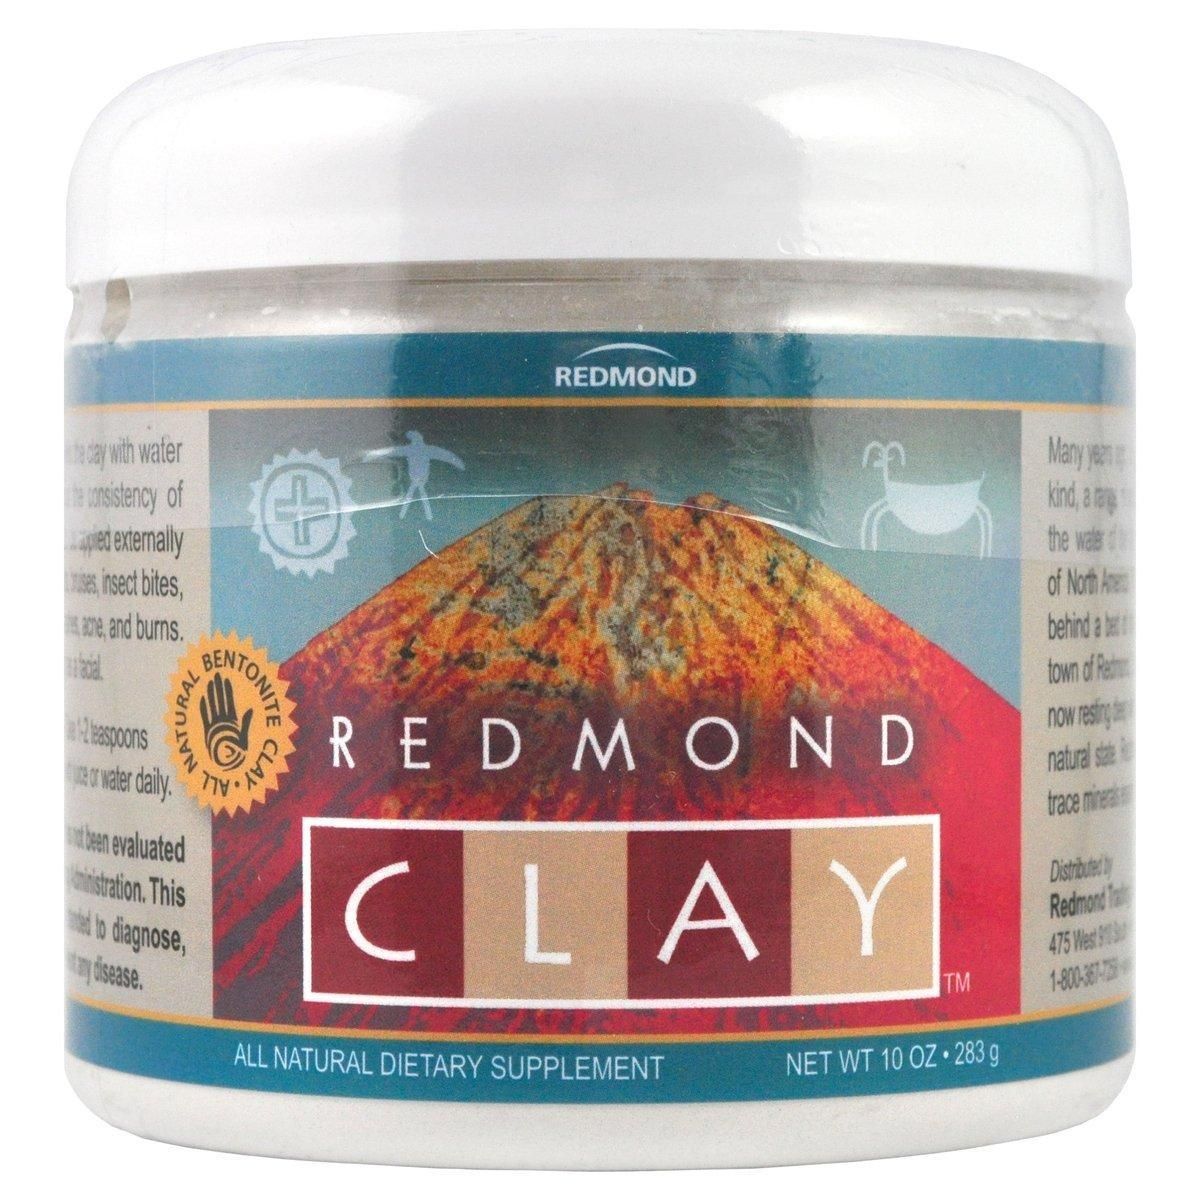 Redmonds clay. Used for so many things.